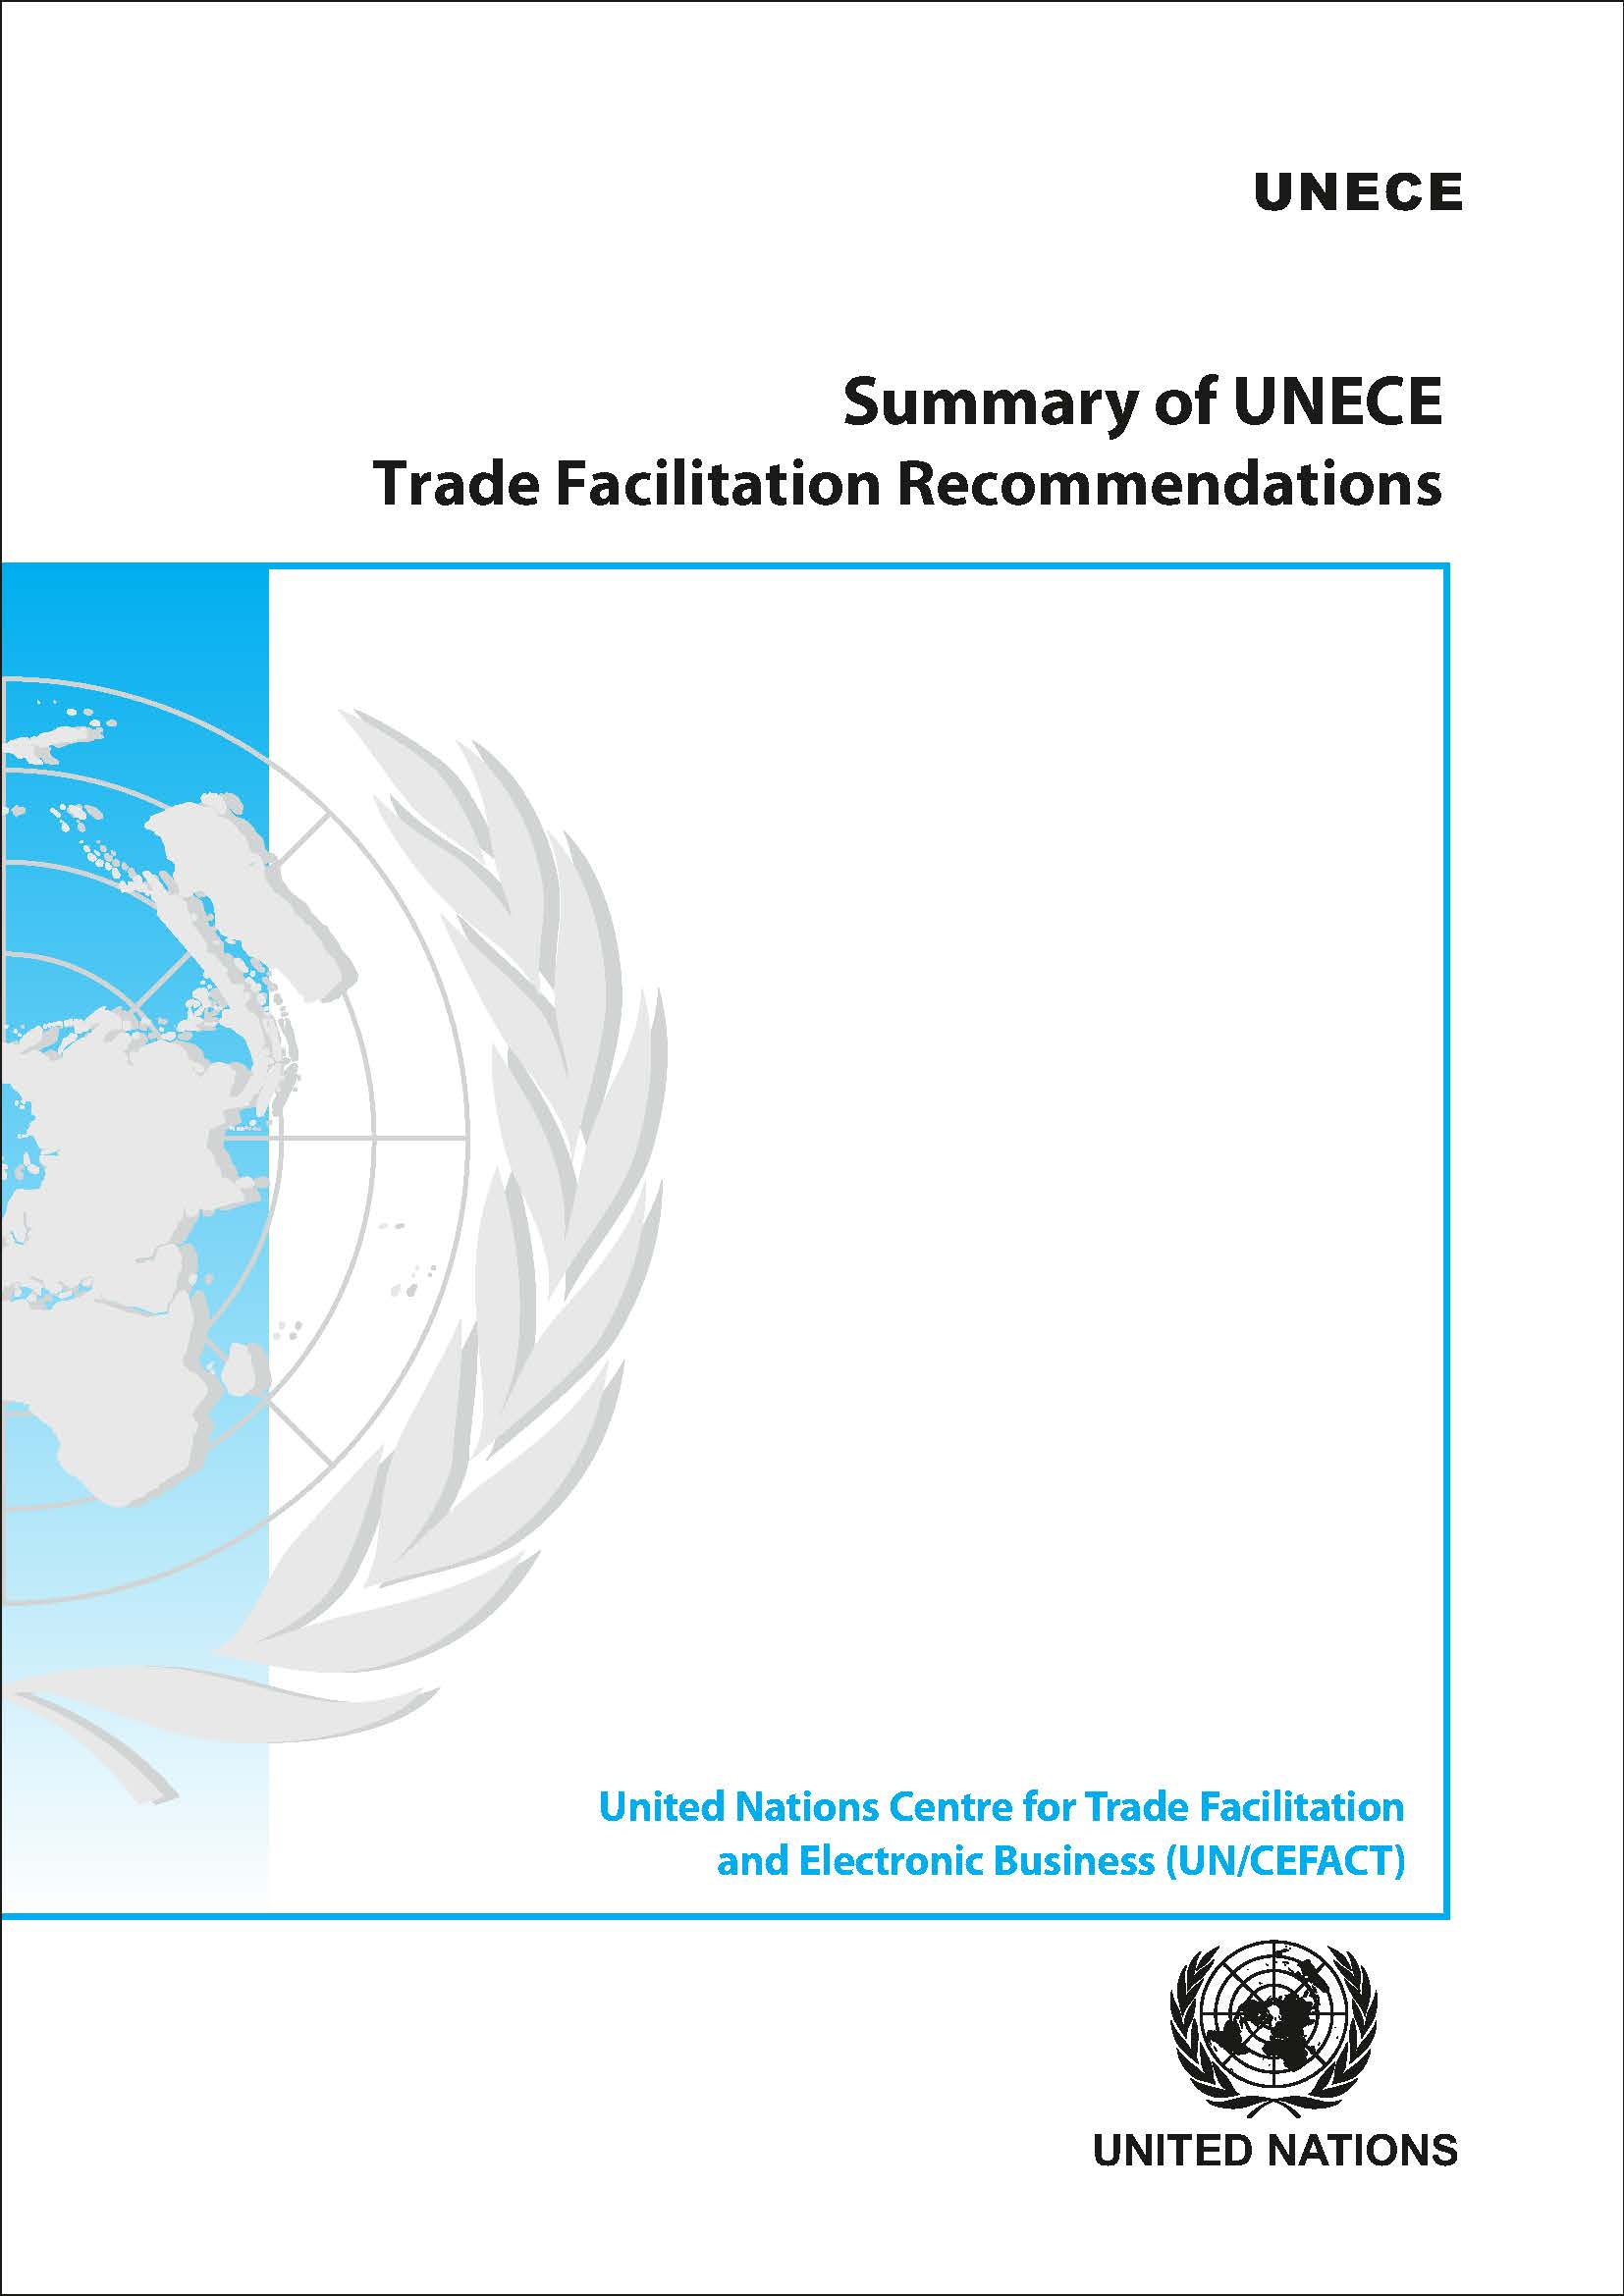 SUMMARY UNECE TRADE FACILIT REC